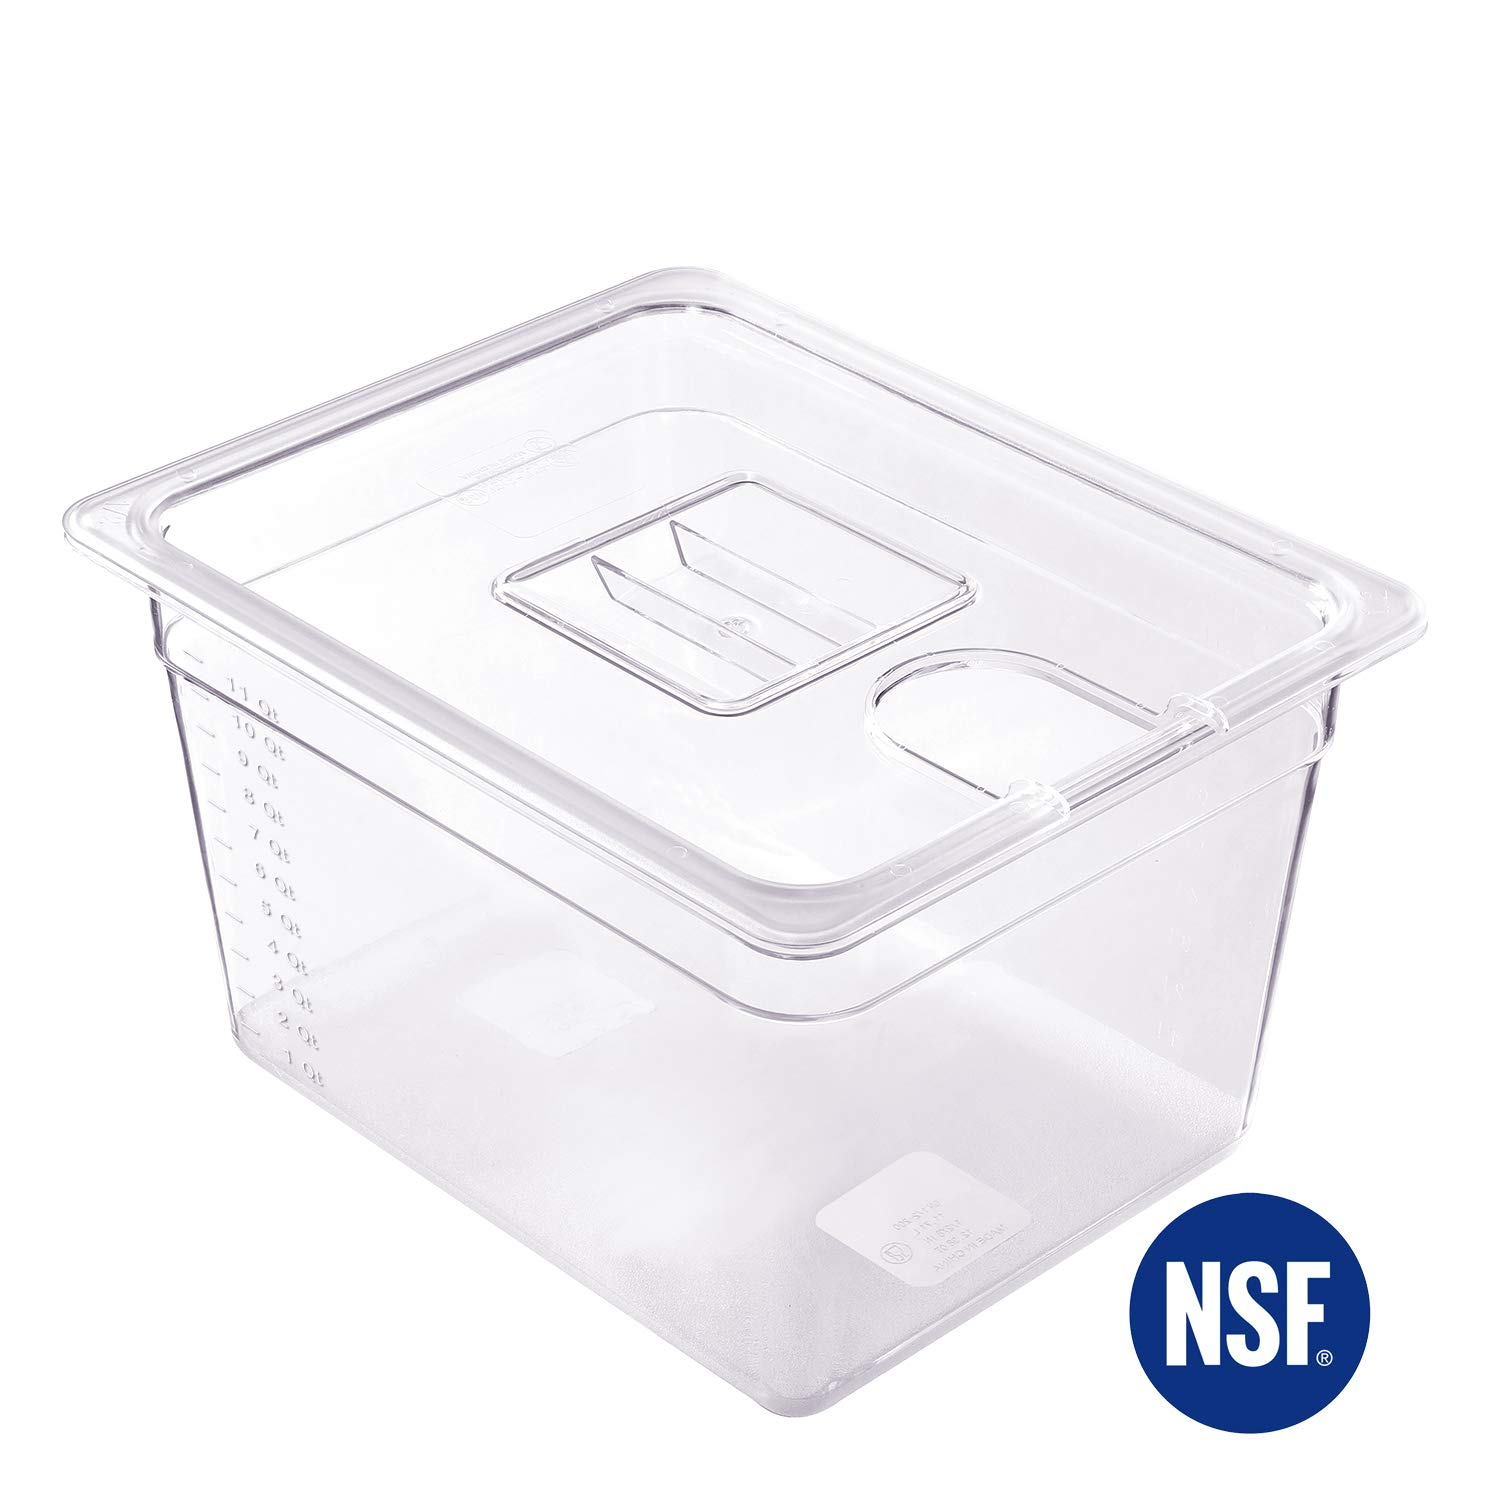 Anmade Sous Vide Container with Notched Lid 12 Quart Cooking Transparent Measurement Marks Storage Container for Sous Vide Immersion Circulator by Anmade